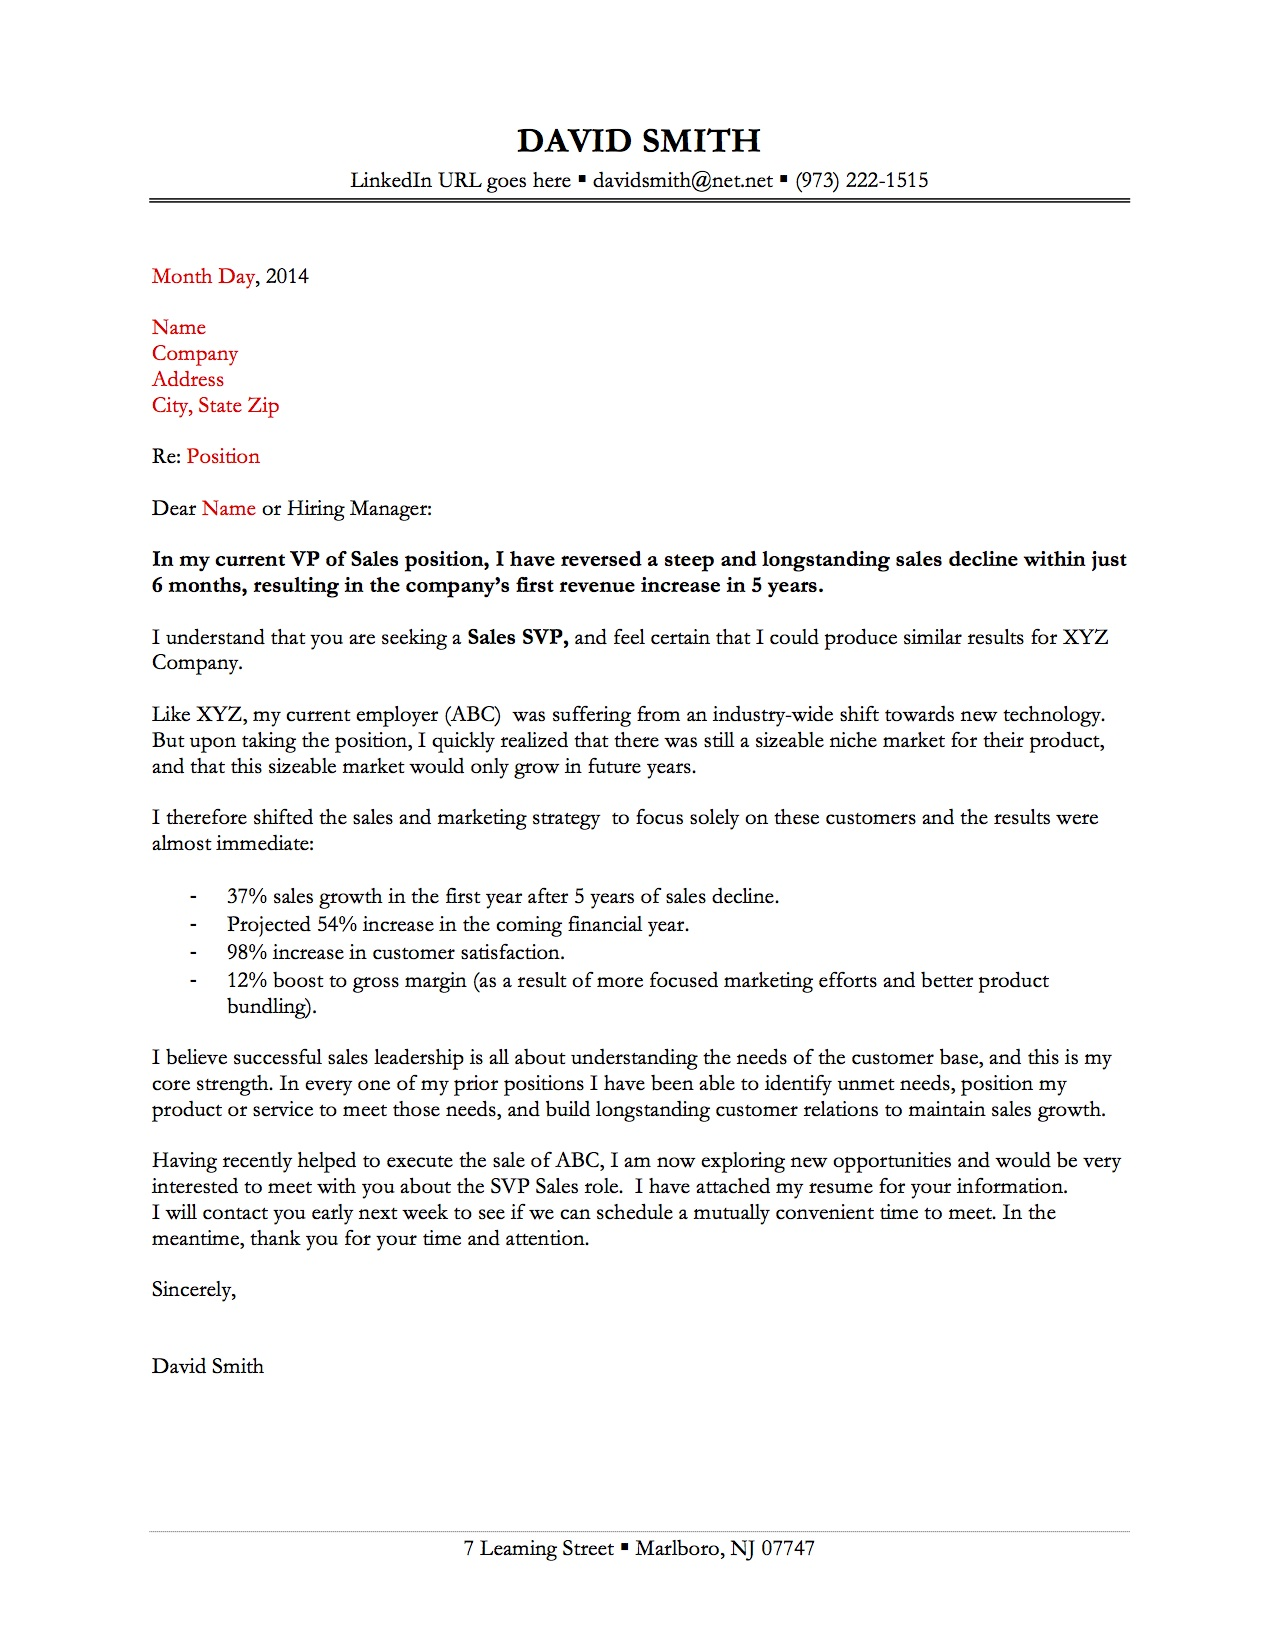 A great sample of a cover letter